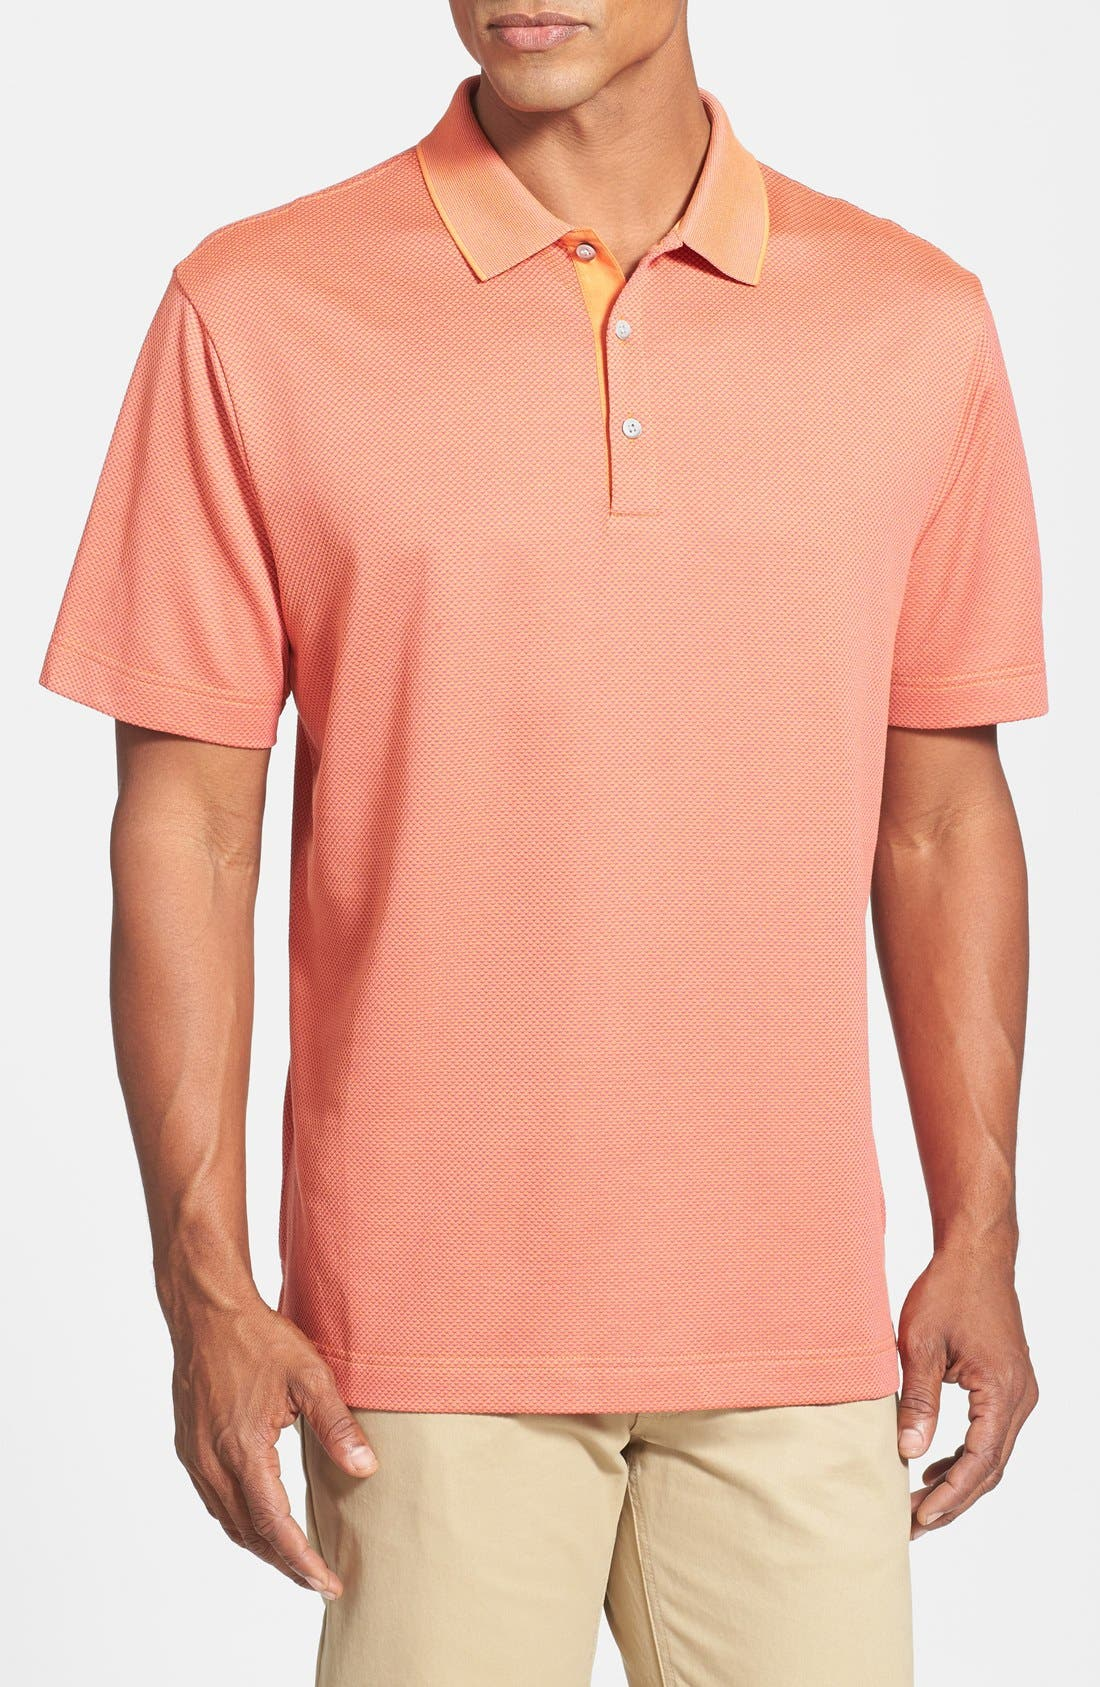 Main Image - Cutter & Buck 'Nano' Wrinkle Free DryTec Golf Polo (Big & Tall)